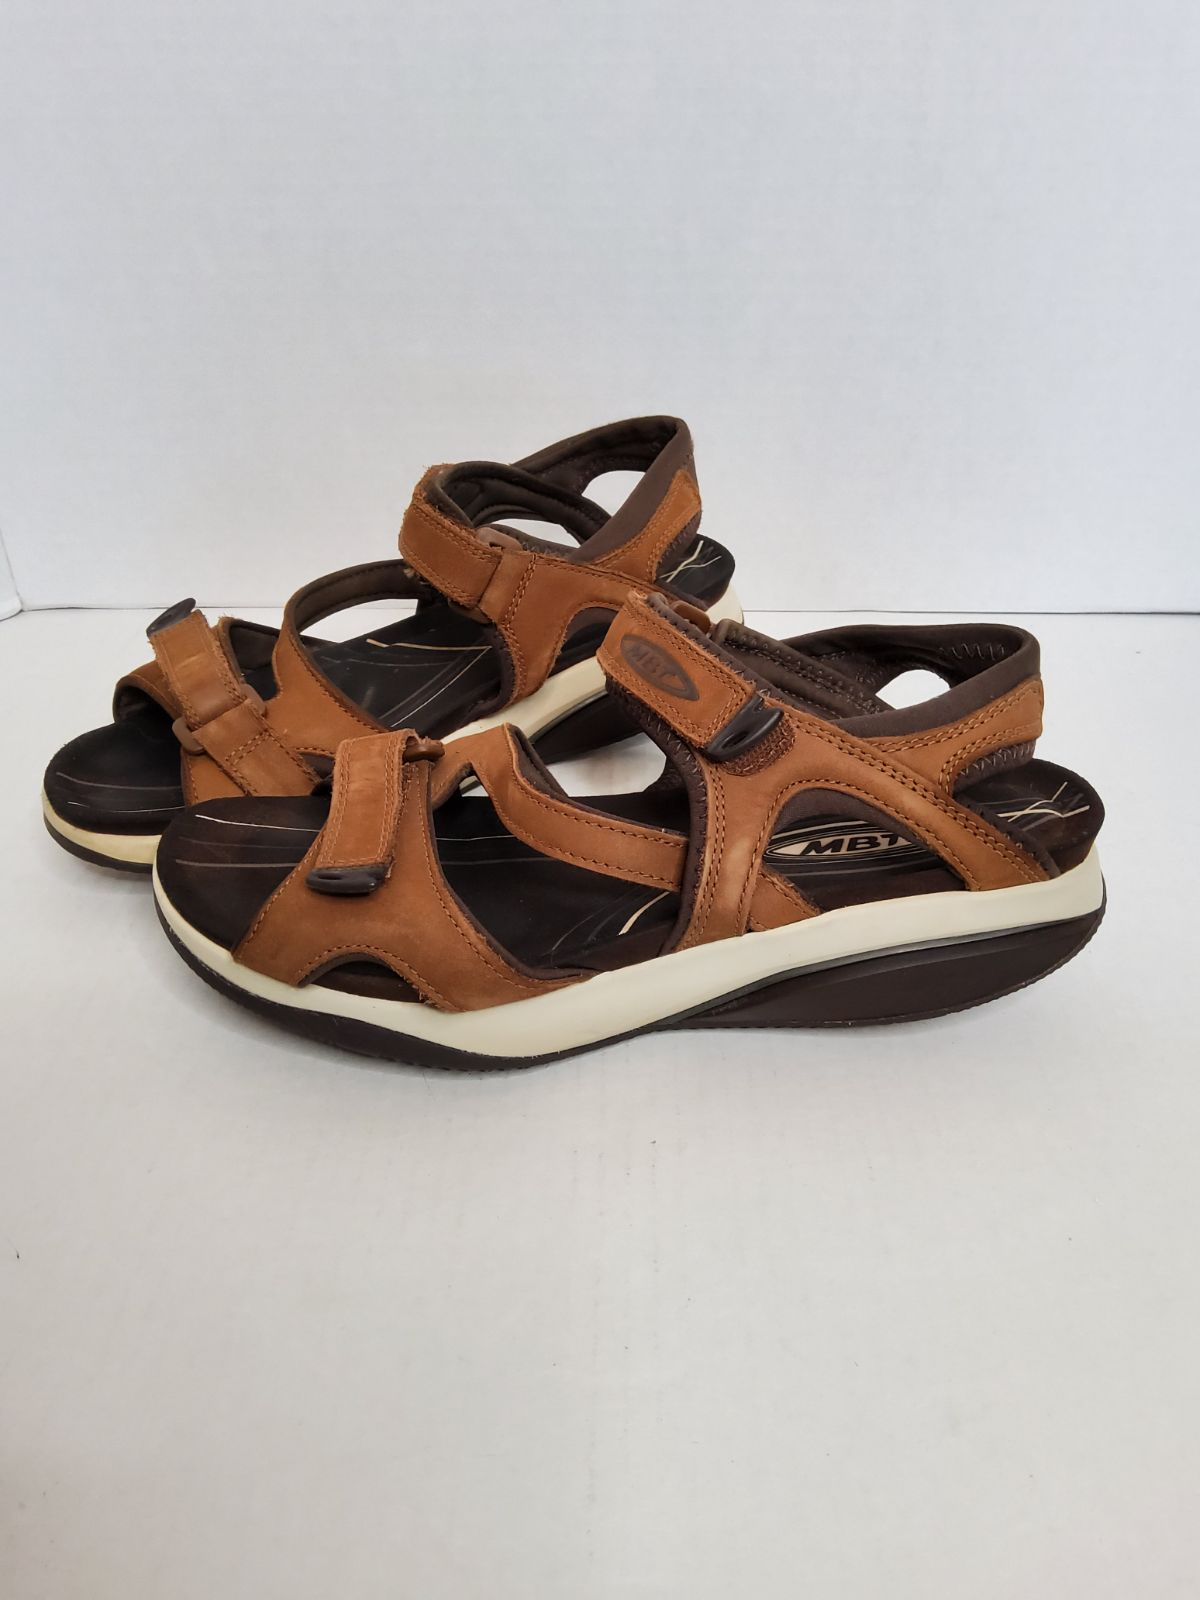 Womens MBT Strap Leather Sandals.